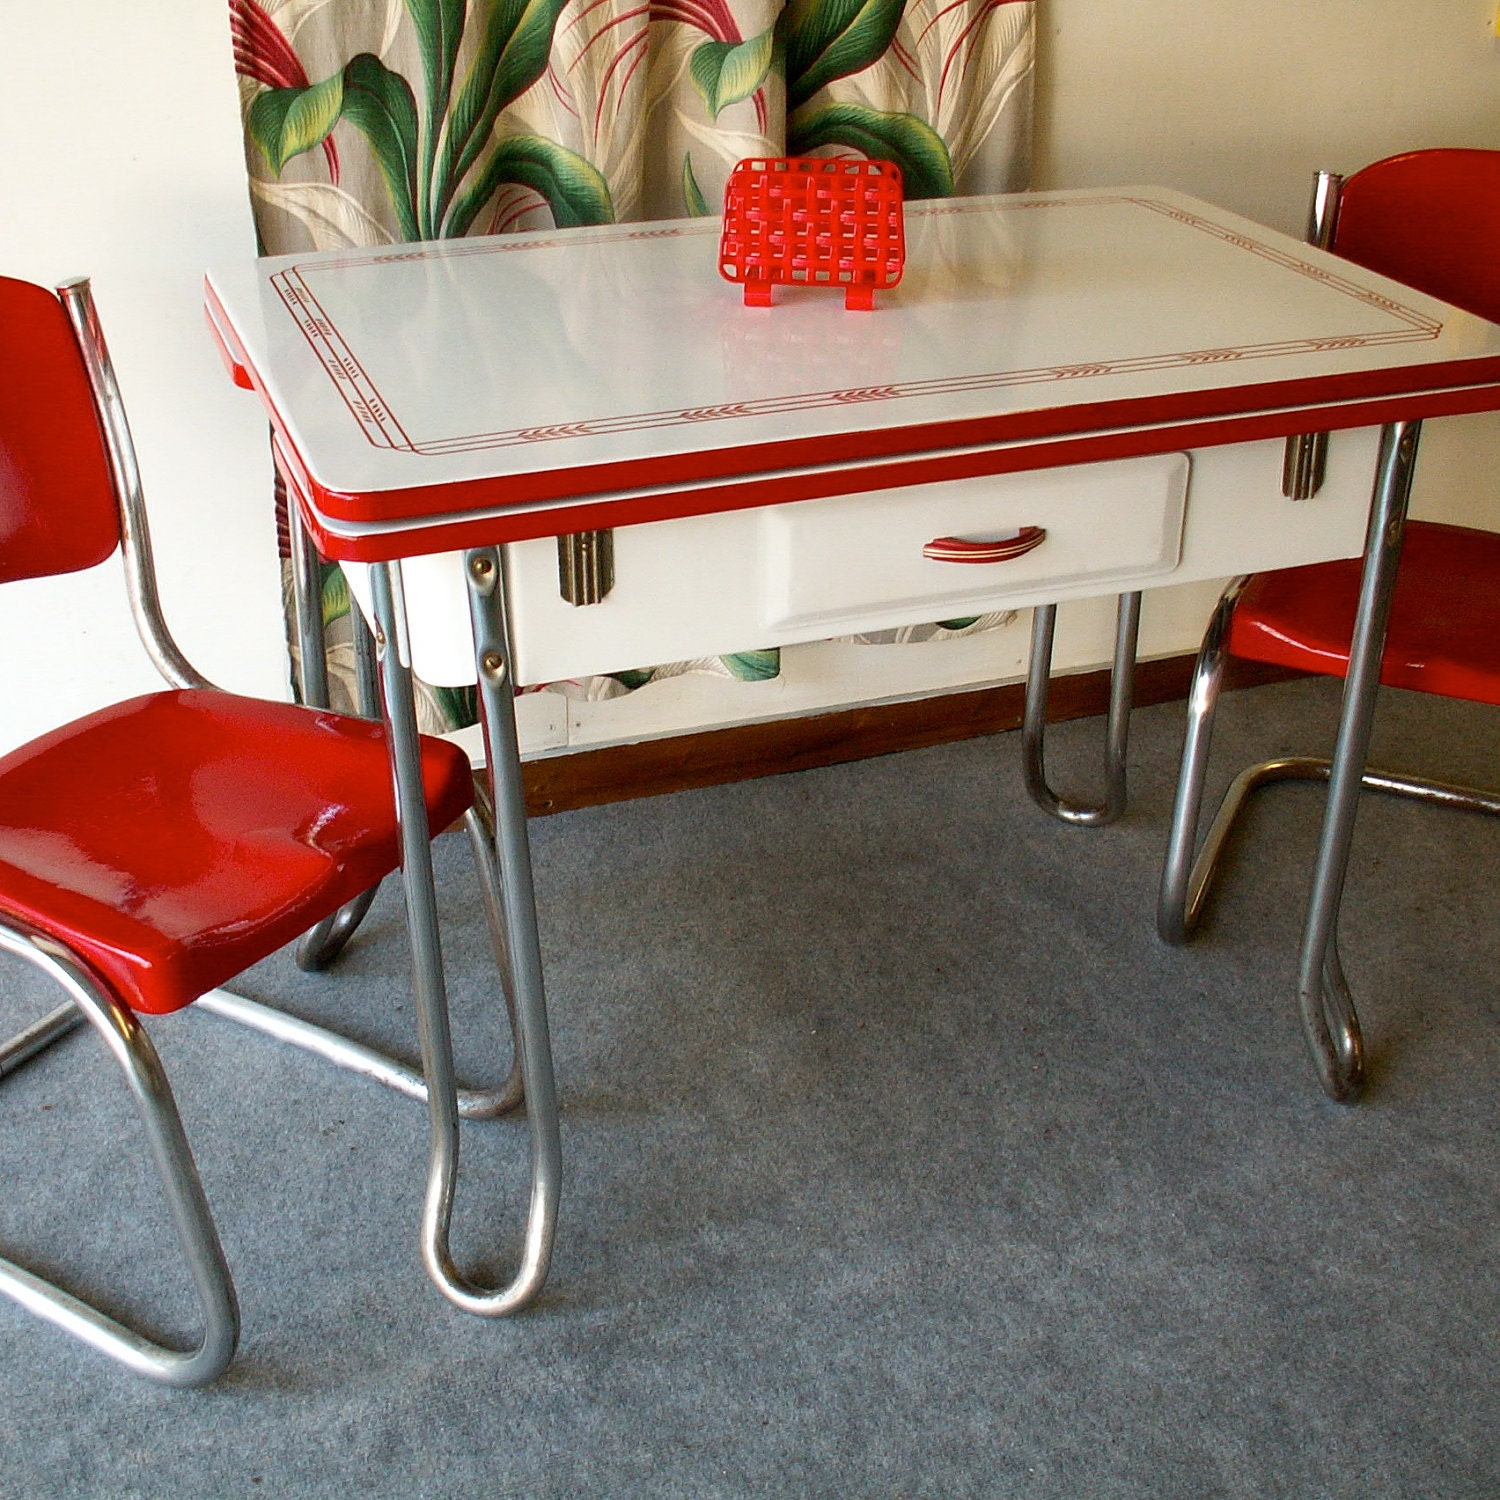 Red Kitchen Table: Vintage Red And White Porcelain Table